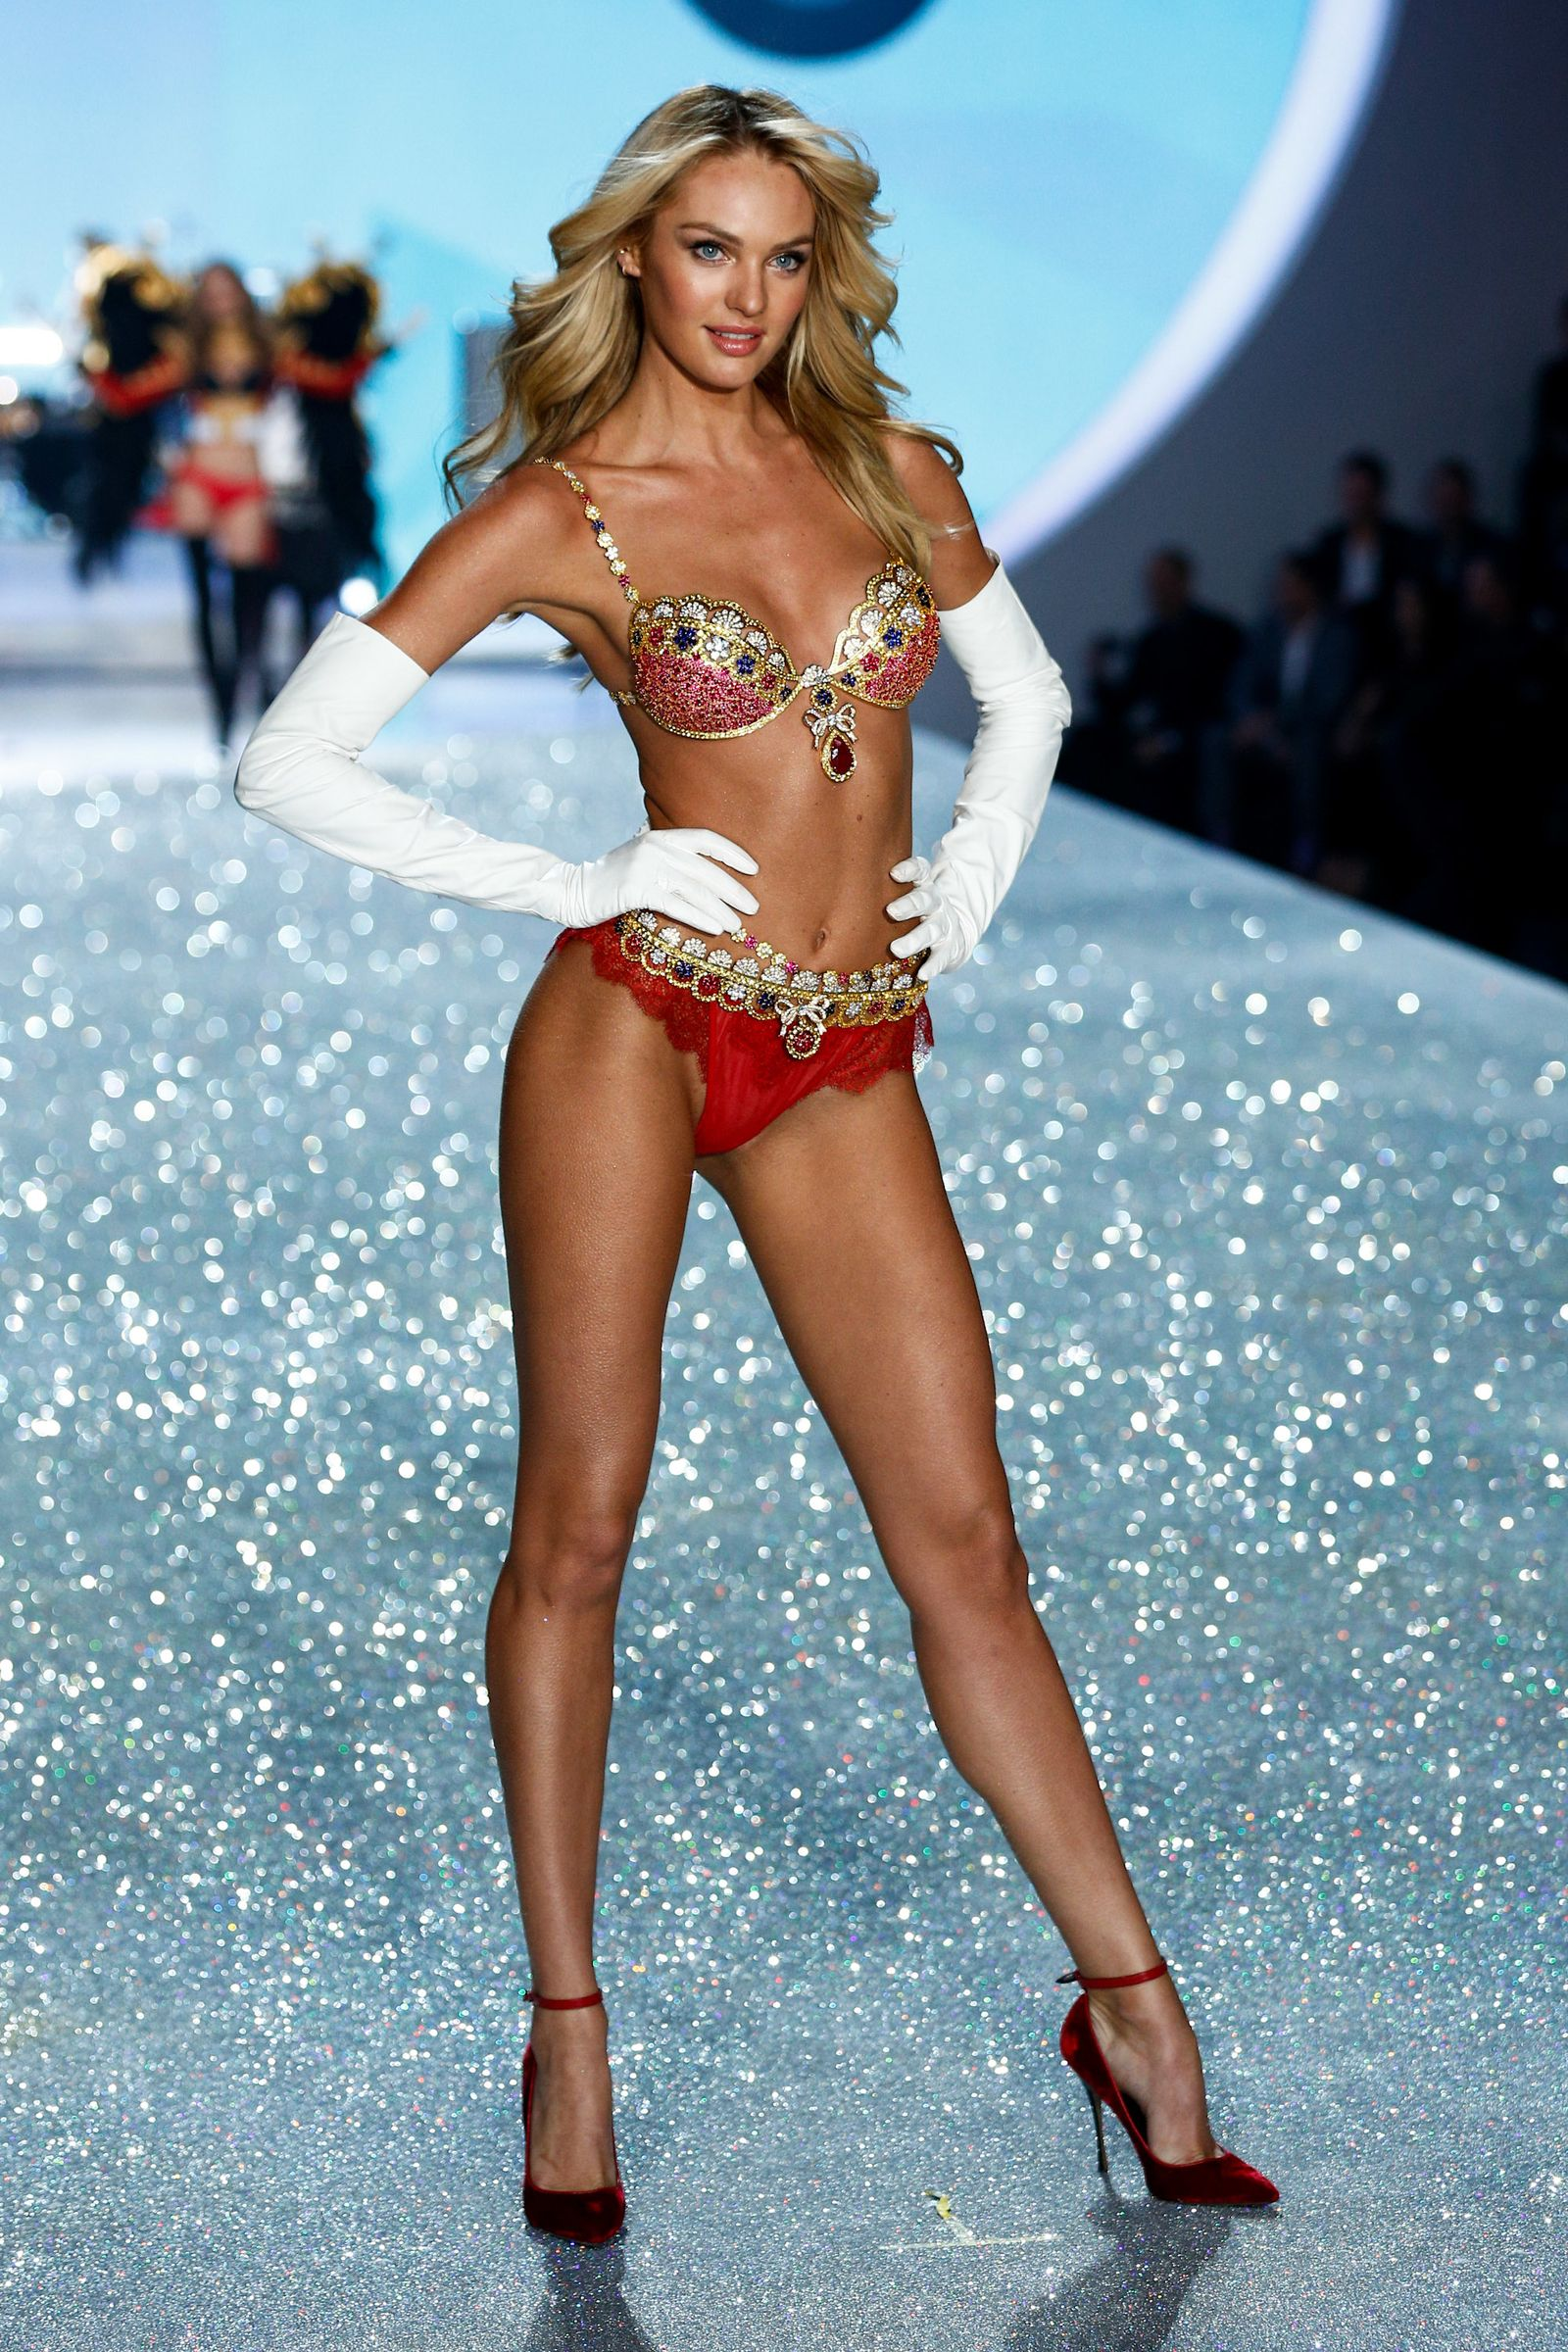 38d88d46557f The 10 Million Dollar Royal Fantasy Bra on Candice Swanepoel. Candice  Swanepoel walks the runway at the 2013 Victoria's Secret Fashion Show ...